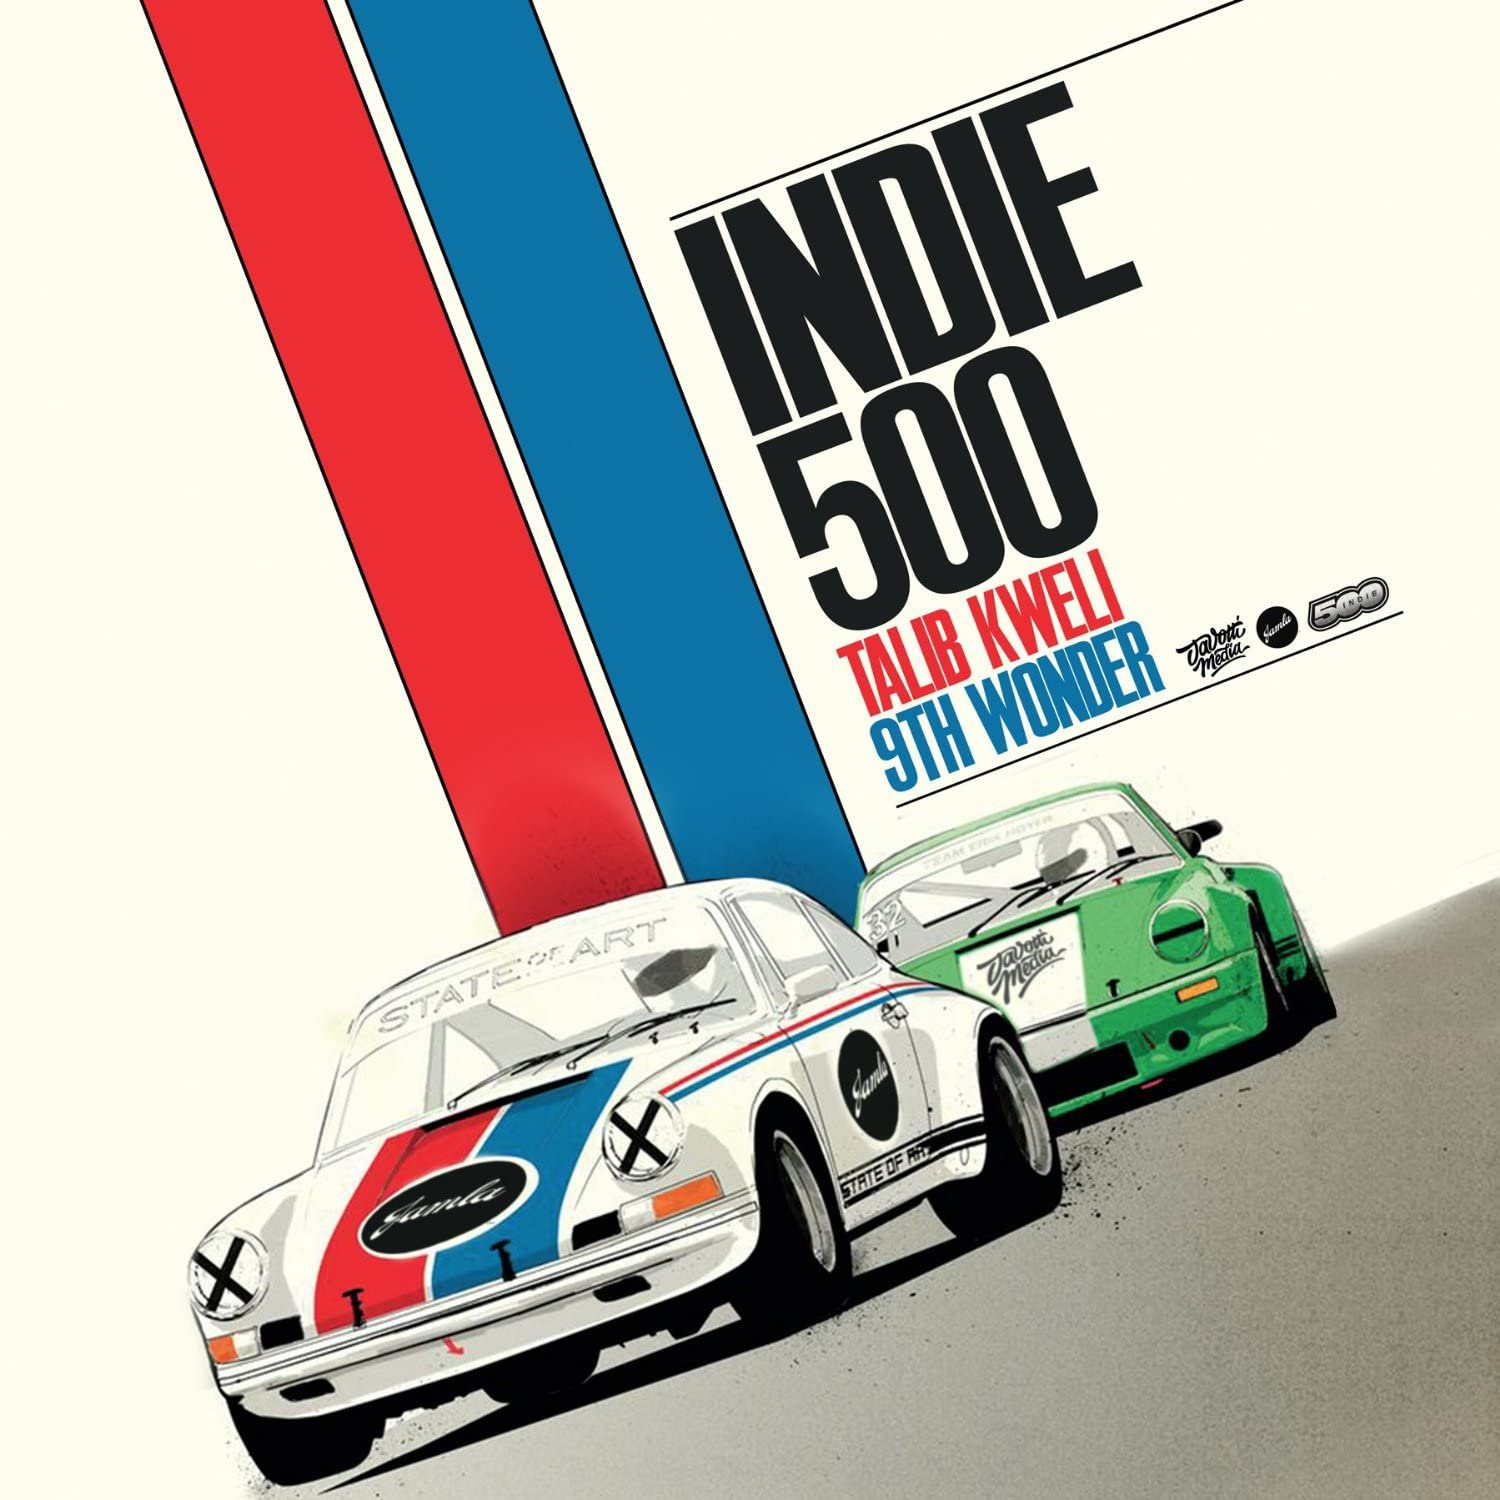 Kweli, Talib & 9th Wonder/Indie 500 [LP]